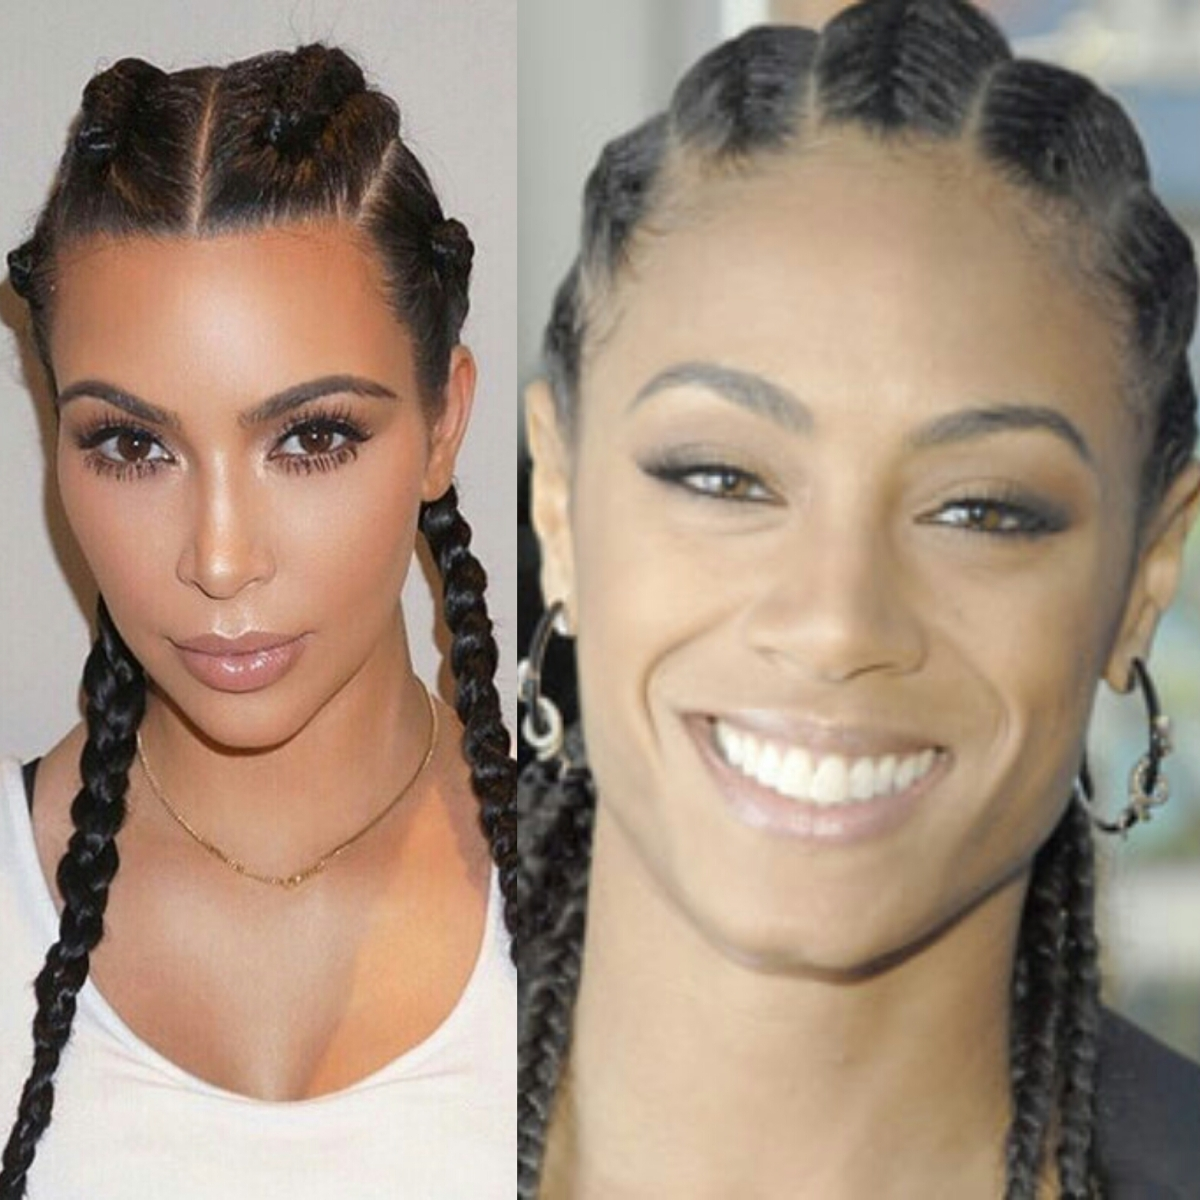 Kim Kardashian Boxer Braids or CornRows ?